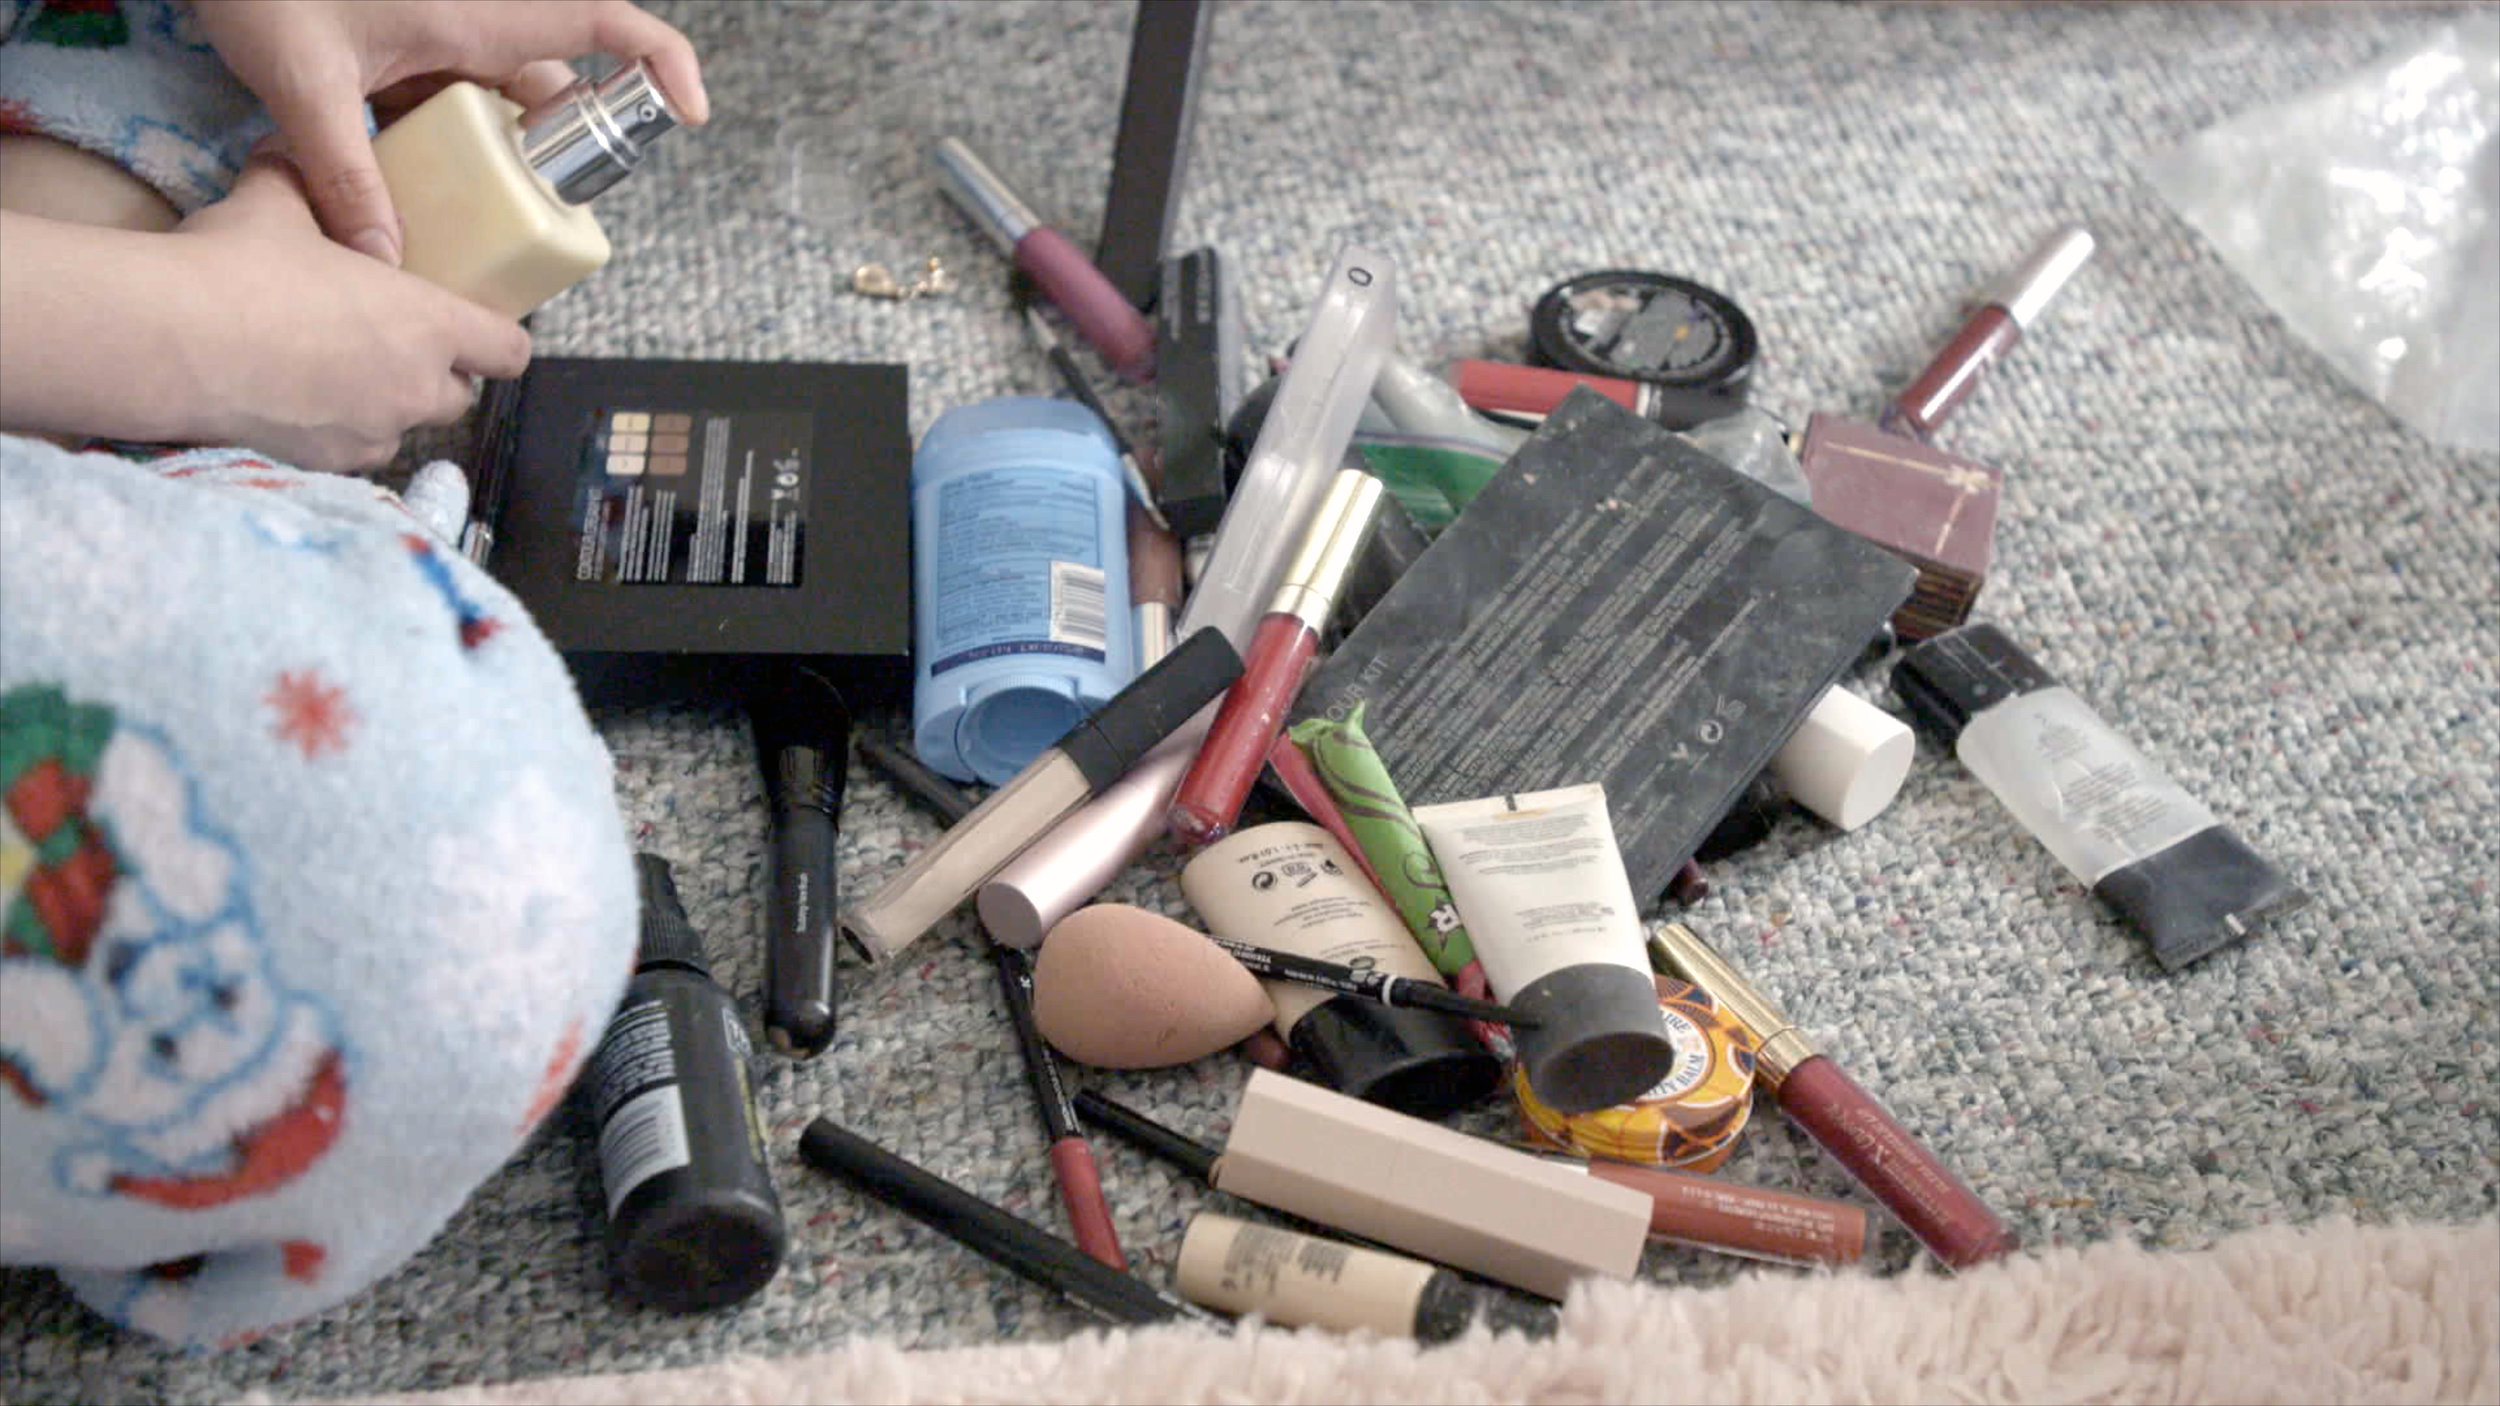 2. Personal Products Scattered On The Floor_Toxic Beauty © White Pine Pictures 2019.jpg